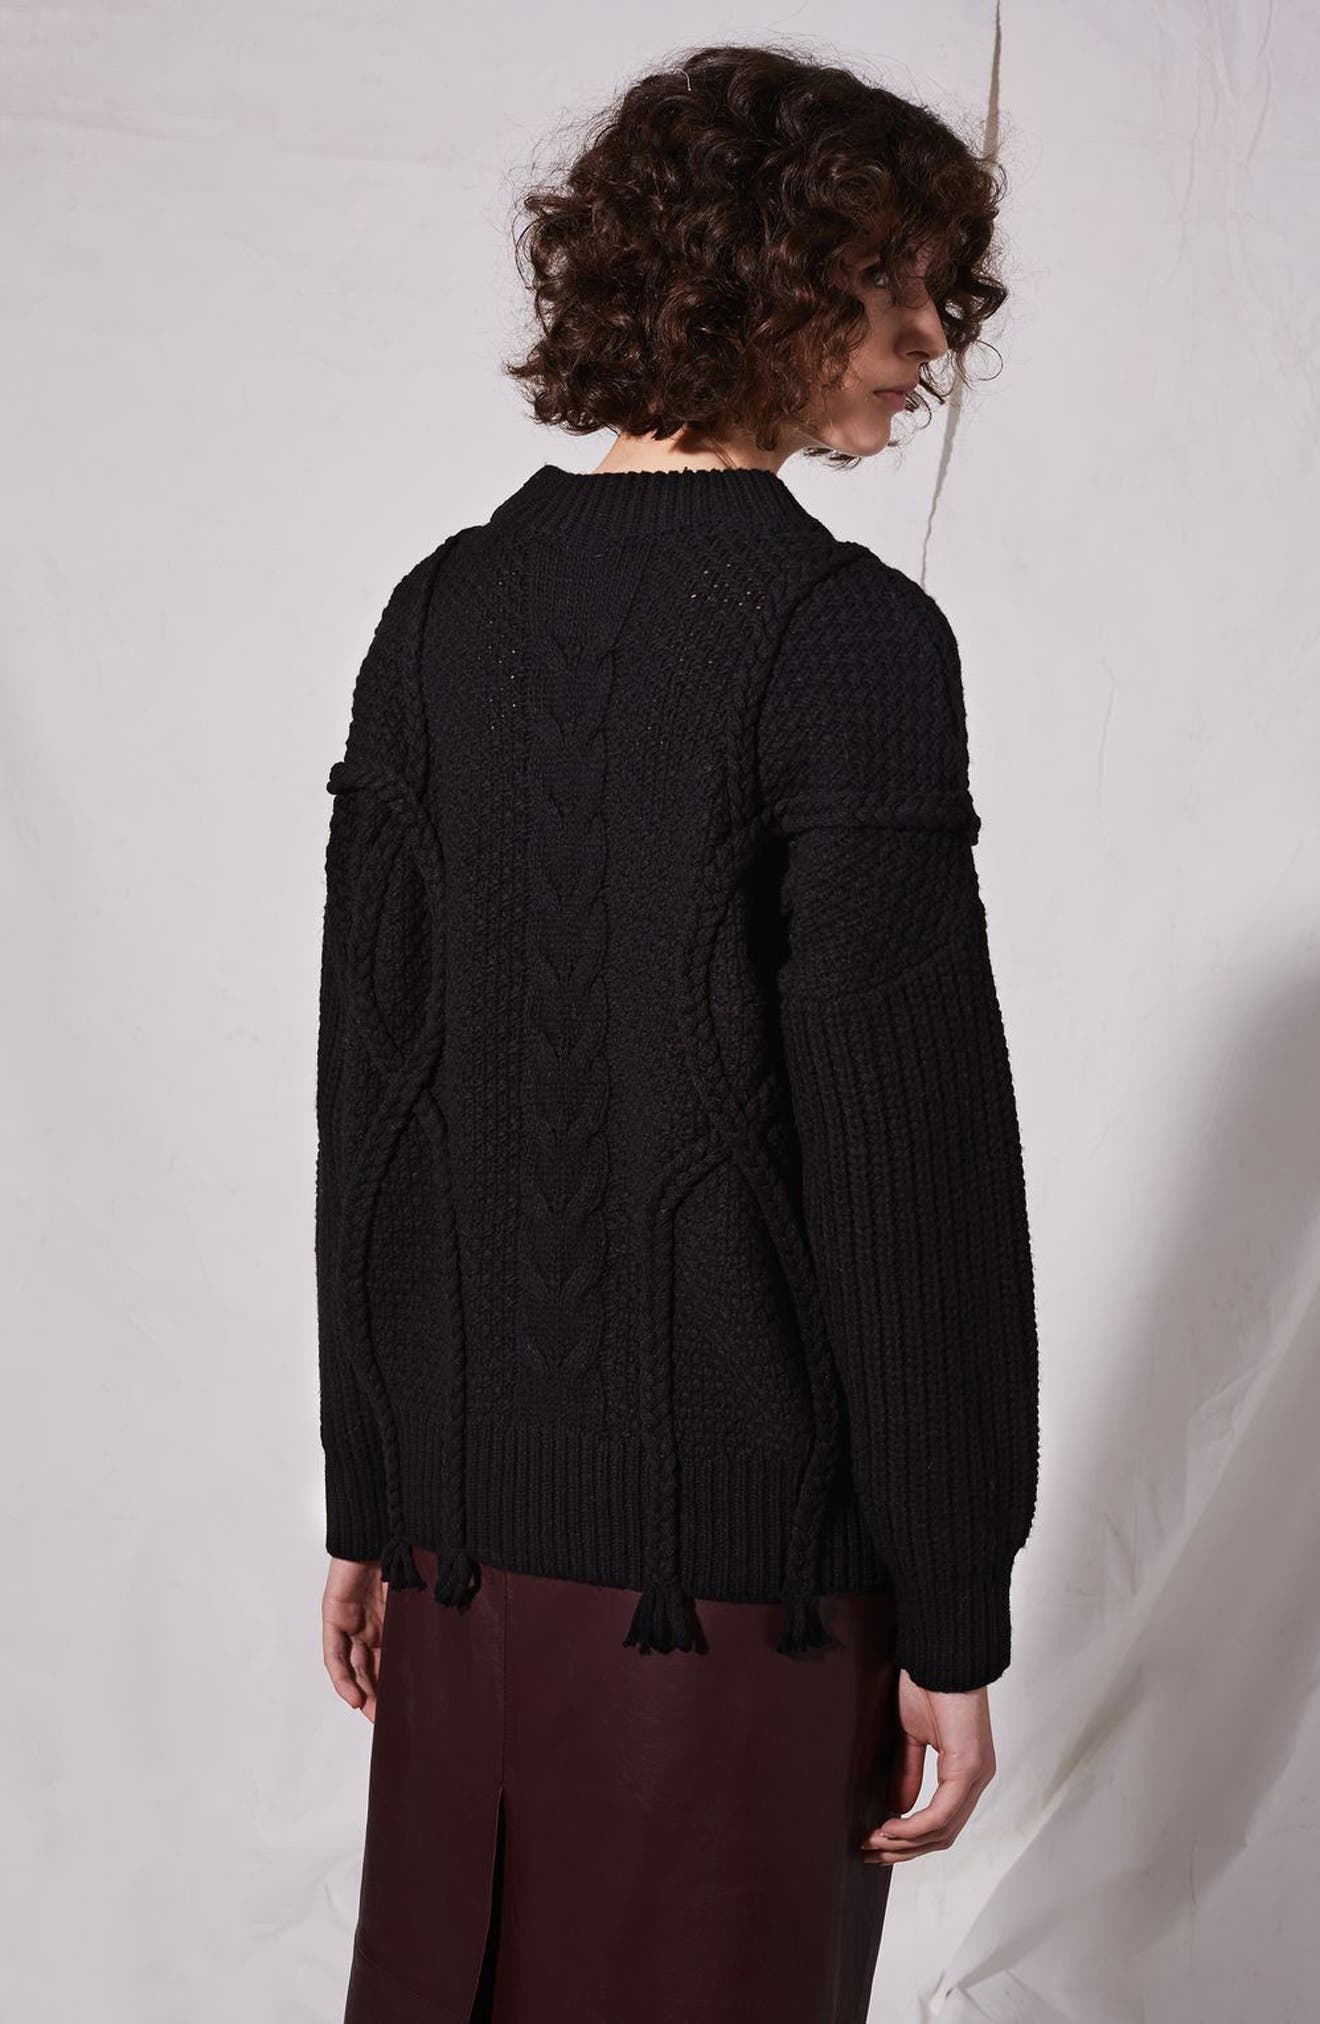 Plaited Cable Knit Sweater,                             Alternate thumbnail 7, color,                             001